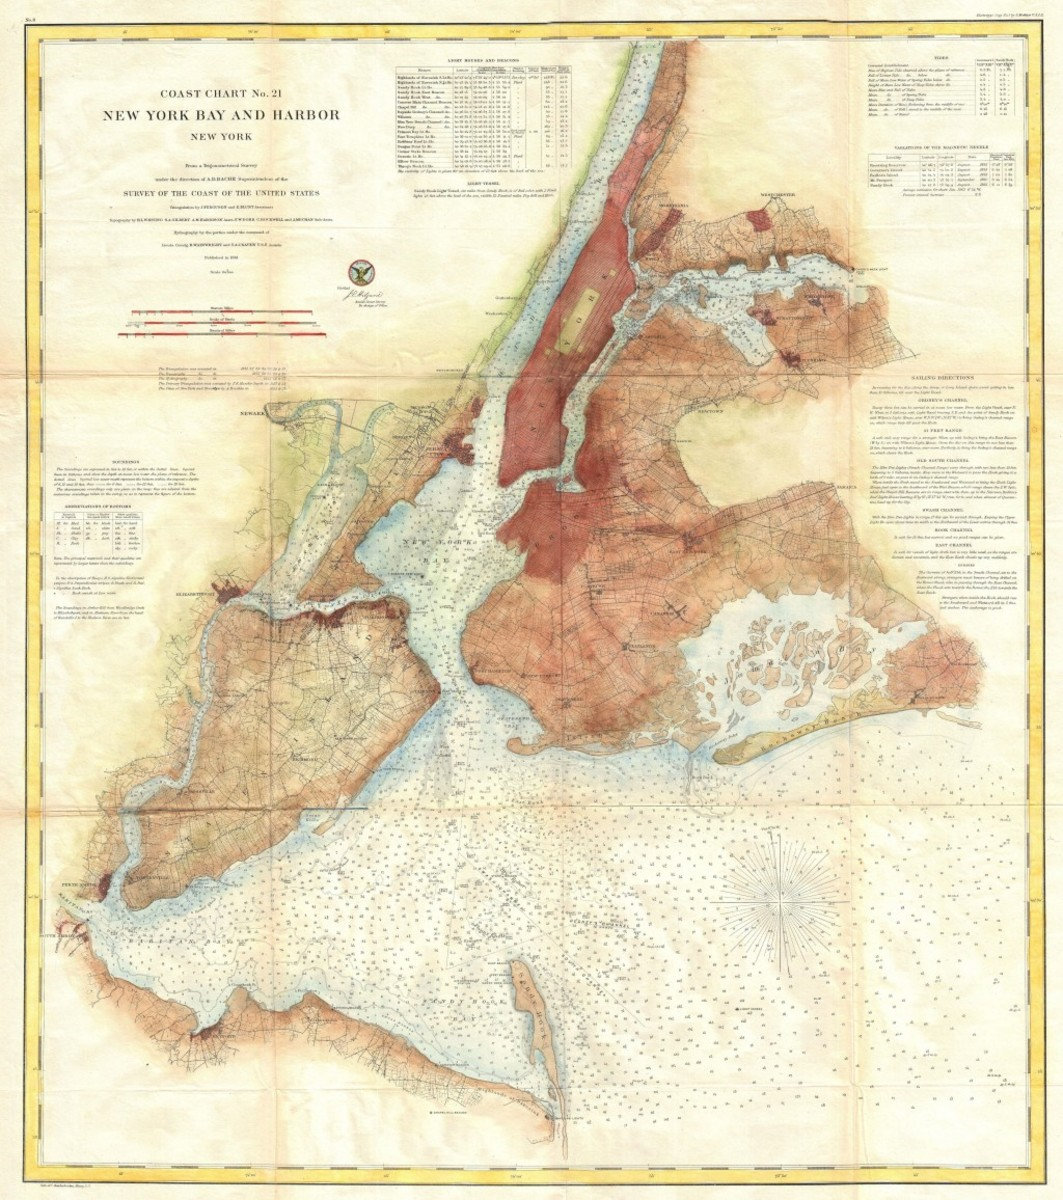 Map of the City of New York 1861